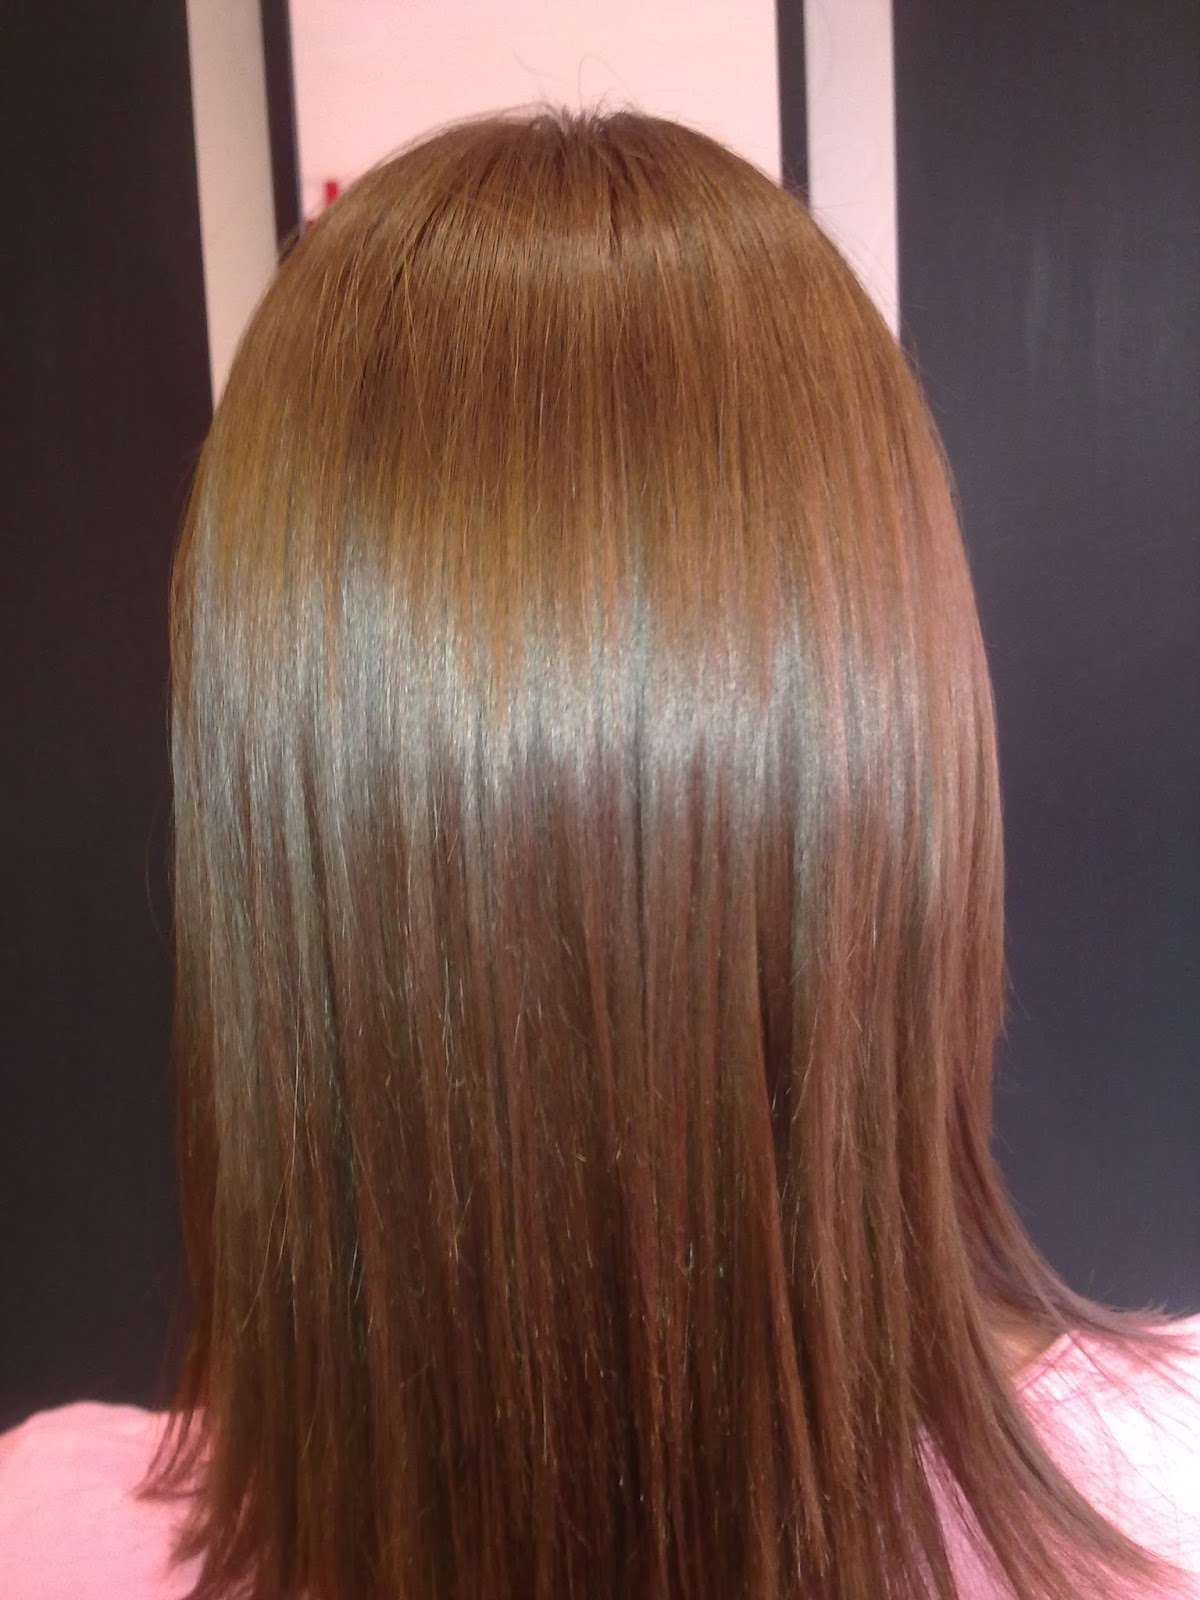 ... Consultant: Dye your Sunkissed hair to a warm blondish brown colour